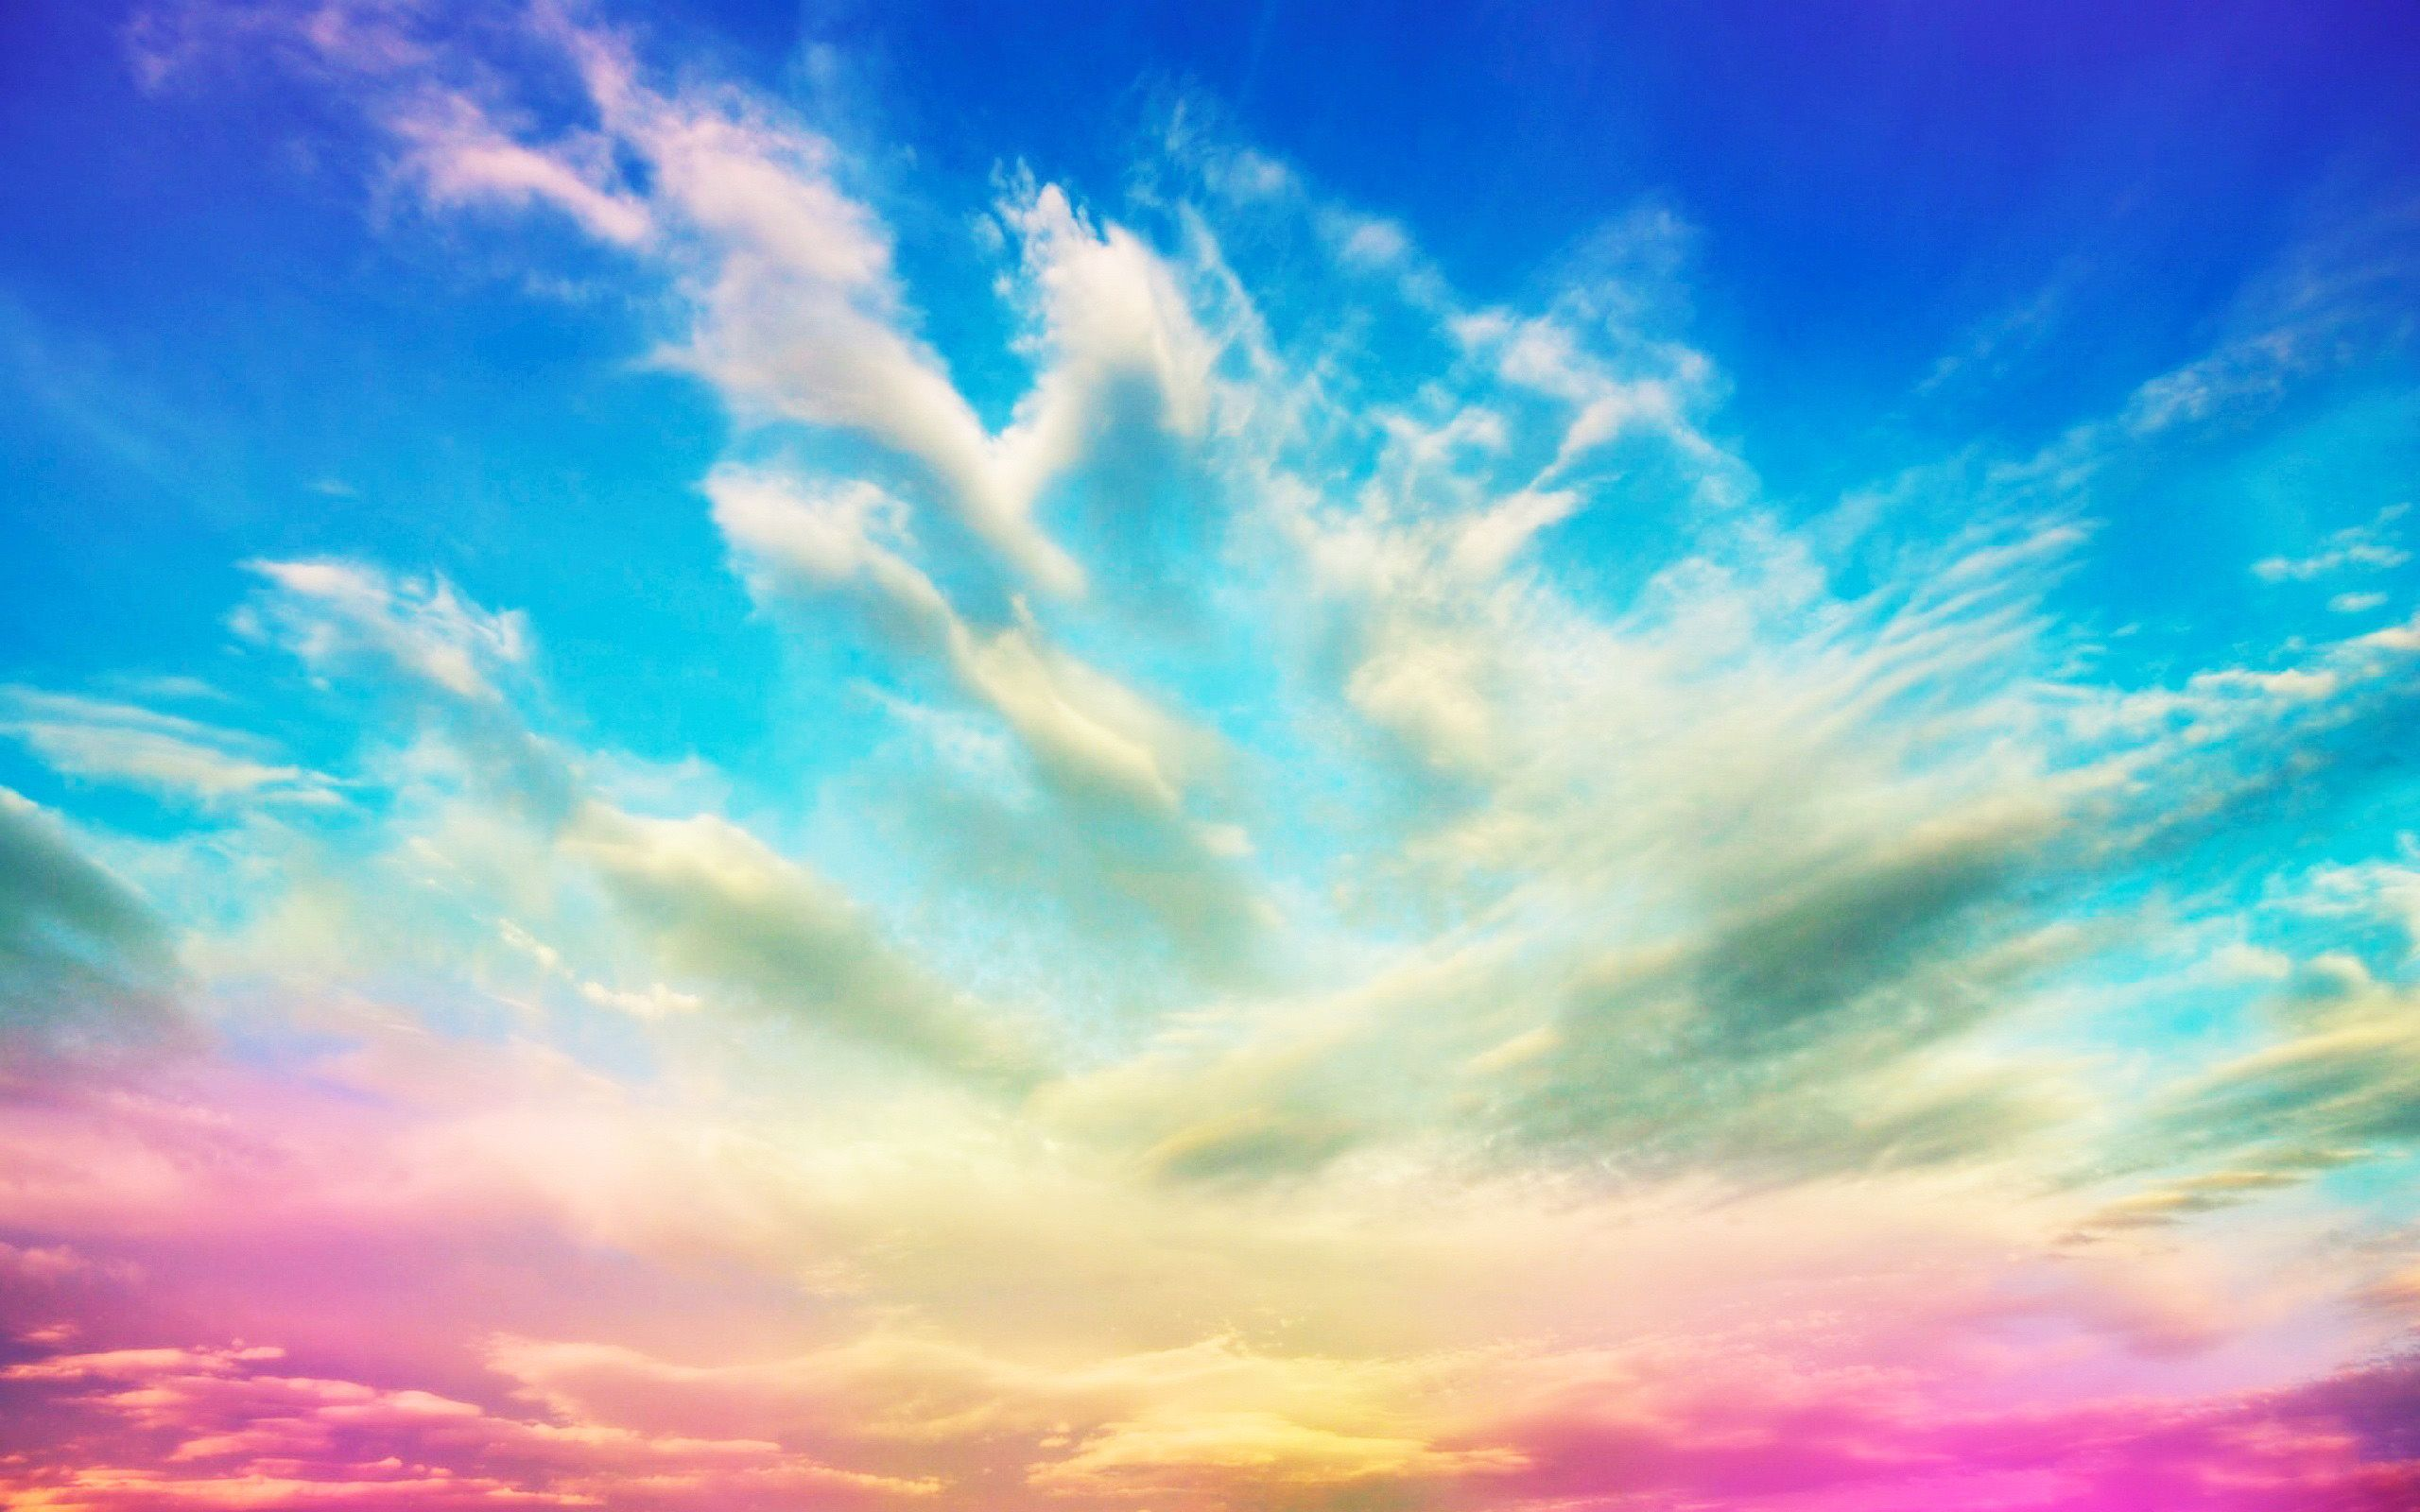 Colorful Cloud Wallpaper | www.pixshark.com - Images ...